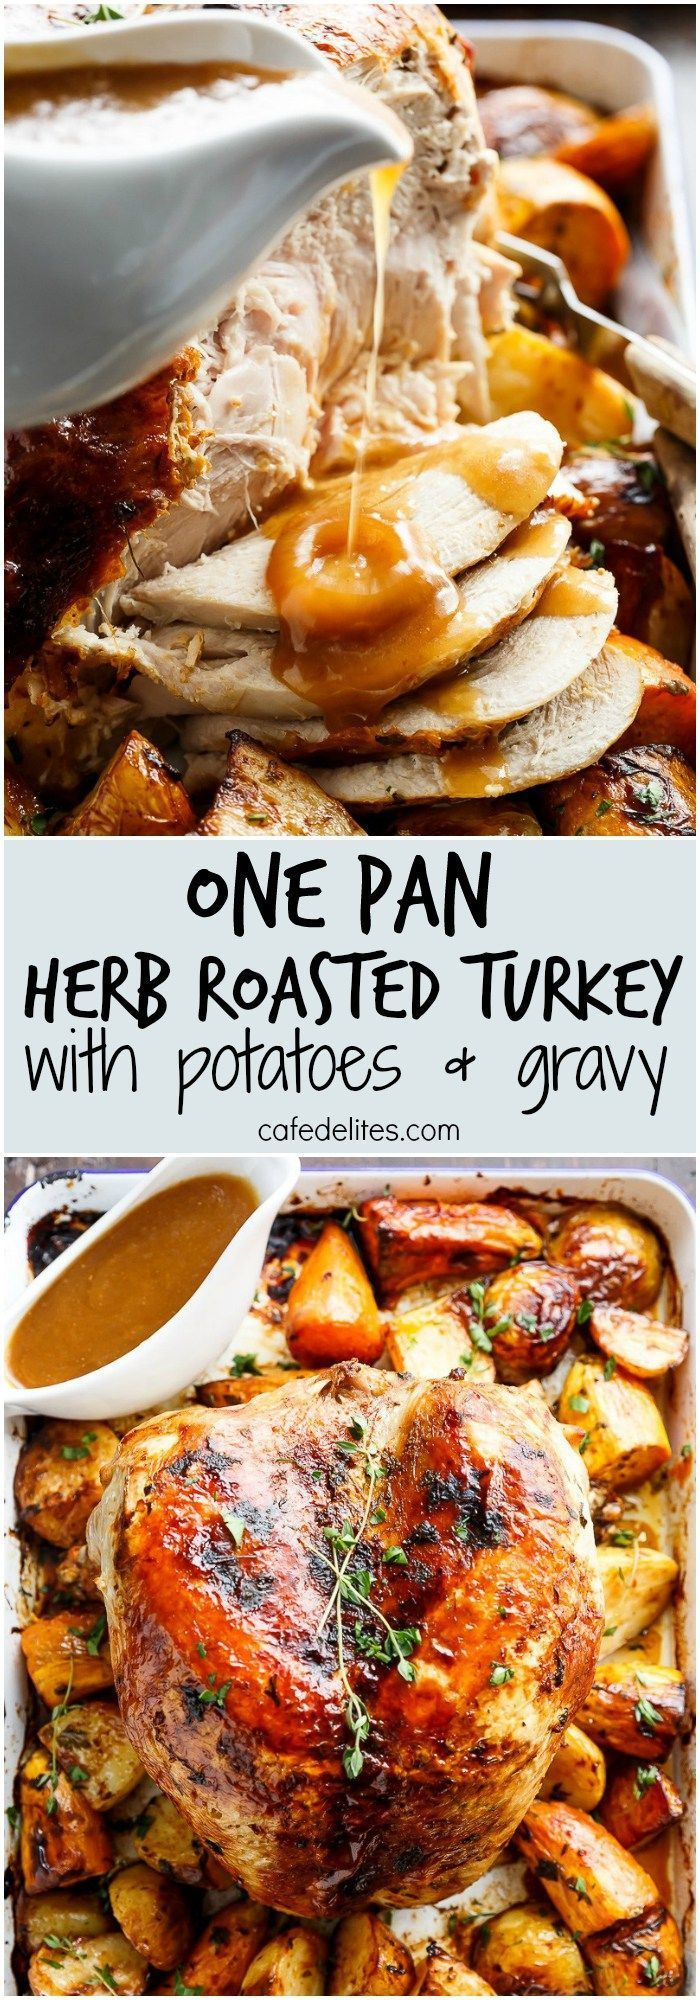 One Pan Juicy Herb Roasted Turkey & Potatoes, with a flavourful gravy made with only 3 ingredients, just in time for Thanksgiving menu planning! | http://cafedelites.com